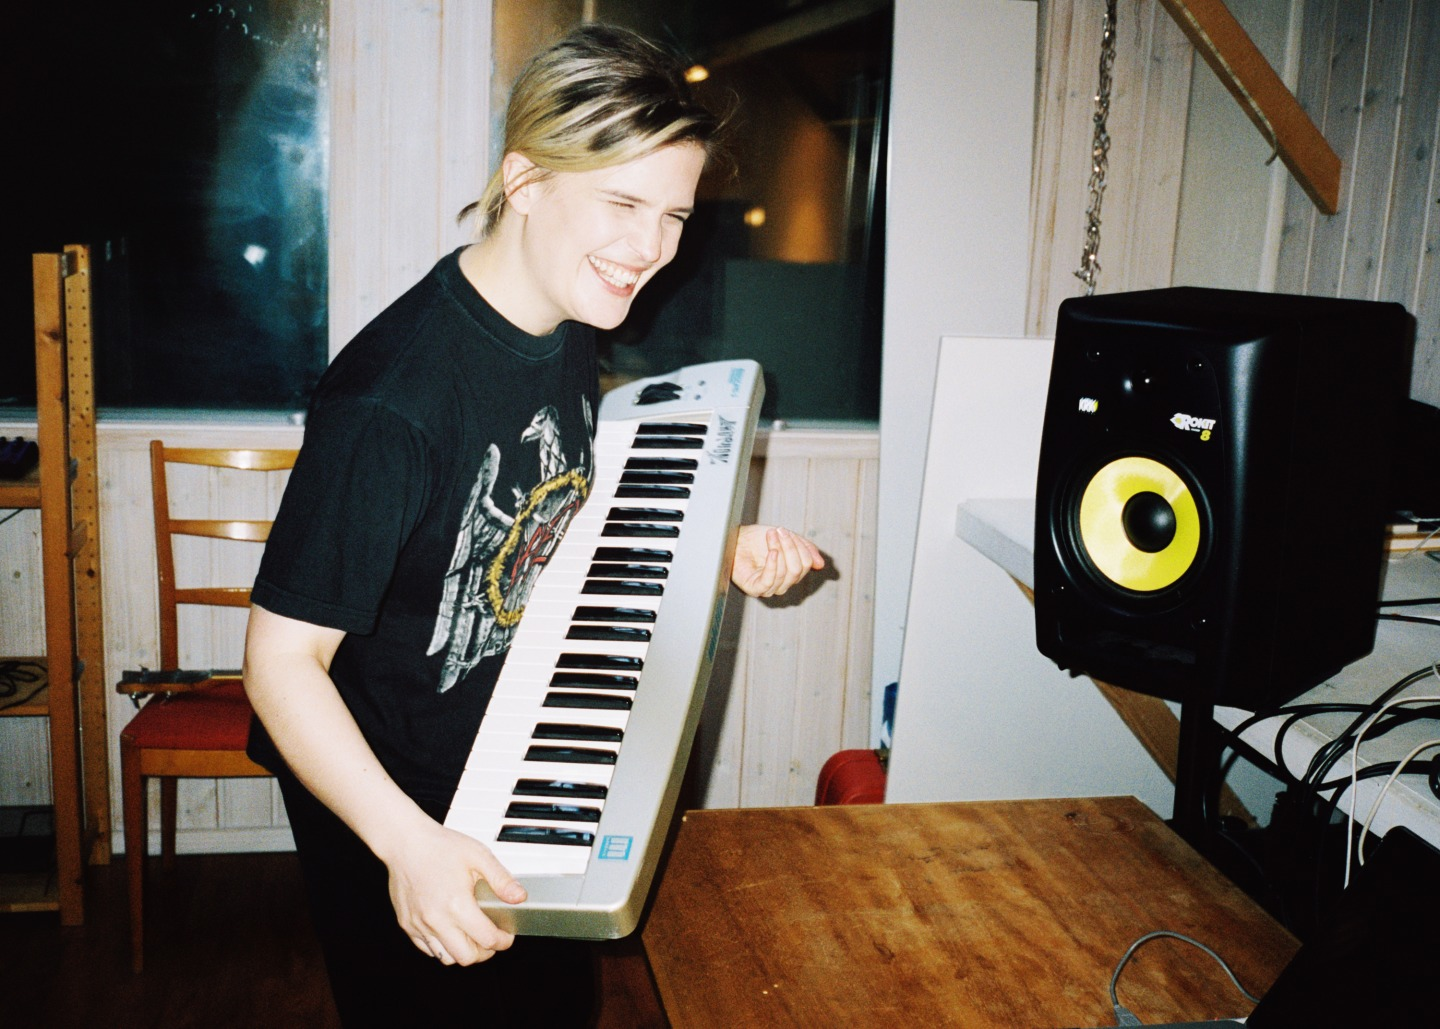 Meet Kablam, The Swedish Producer Soundtracking Political Frustration